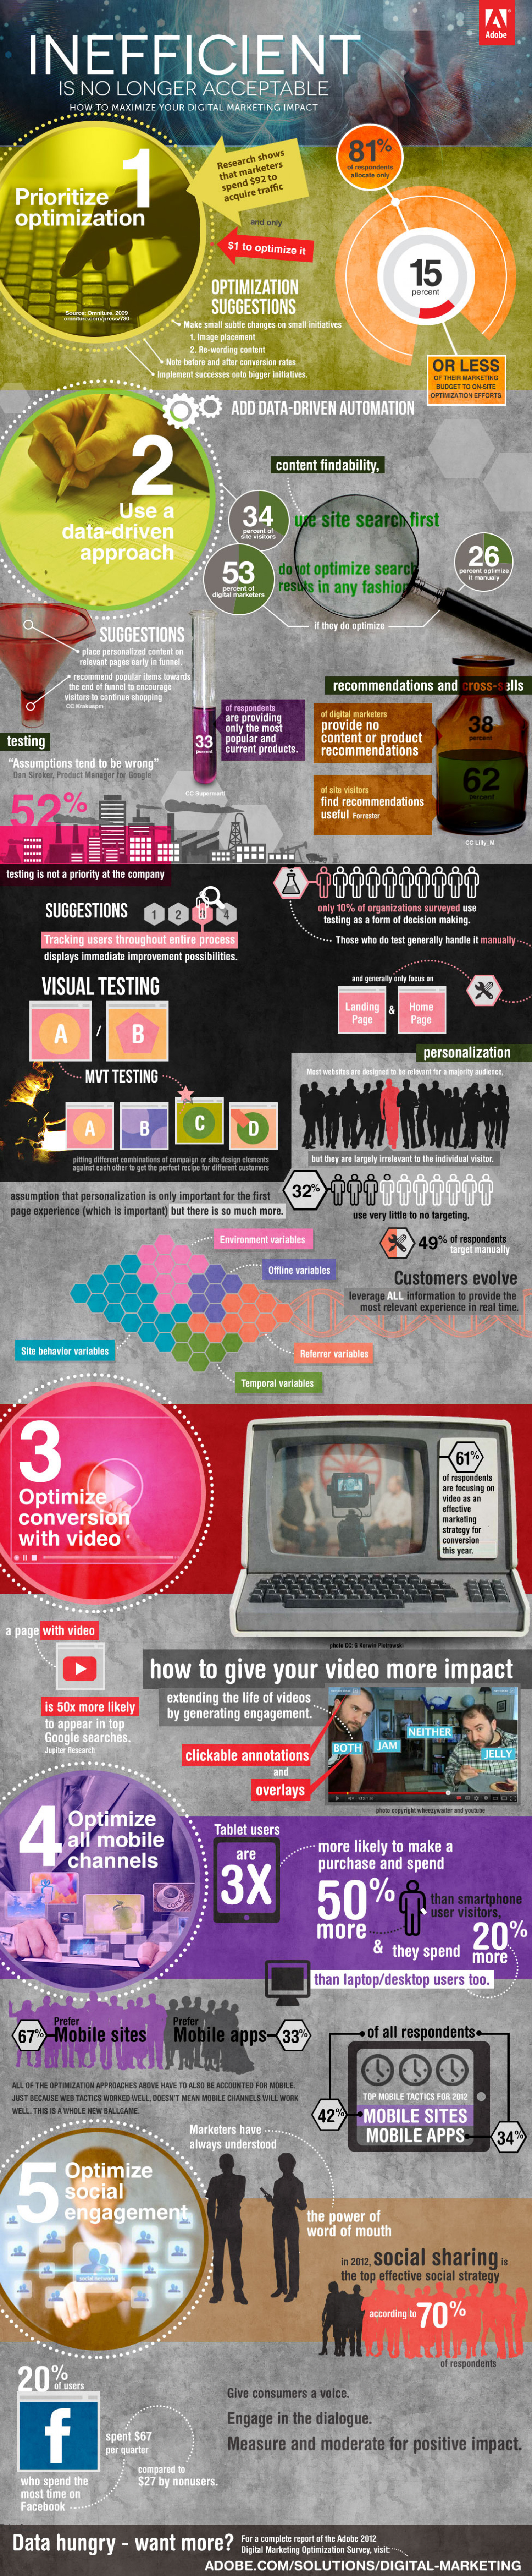 Top 5 Conversion Opportunities for Digital Marketers Infographic